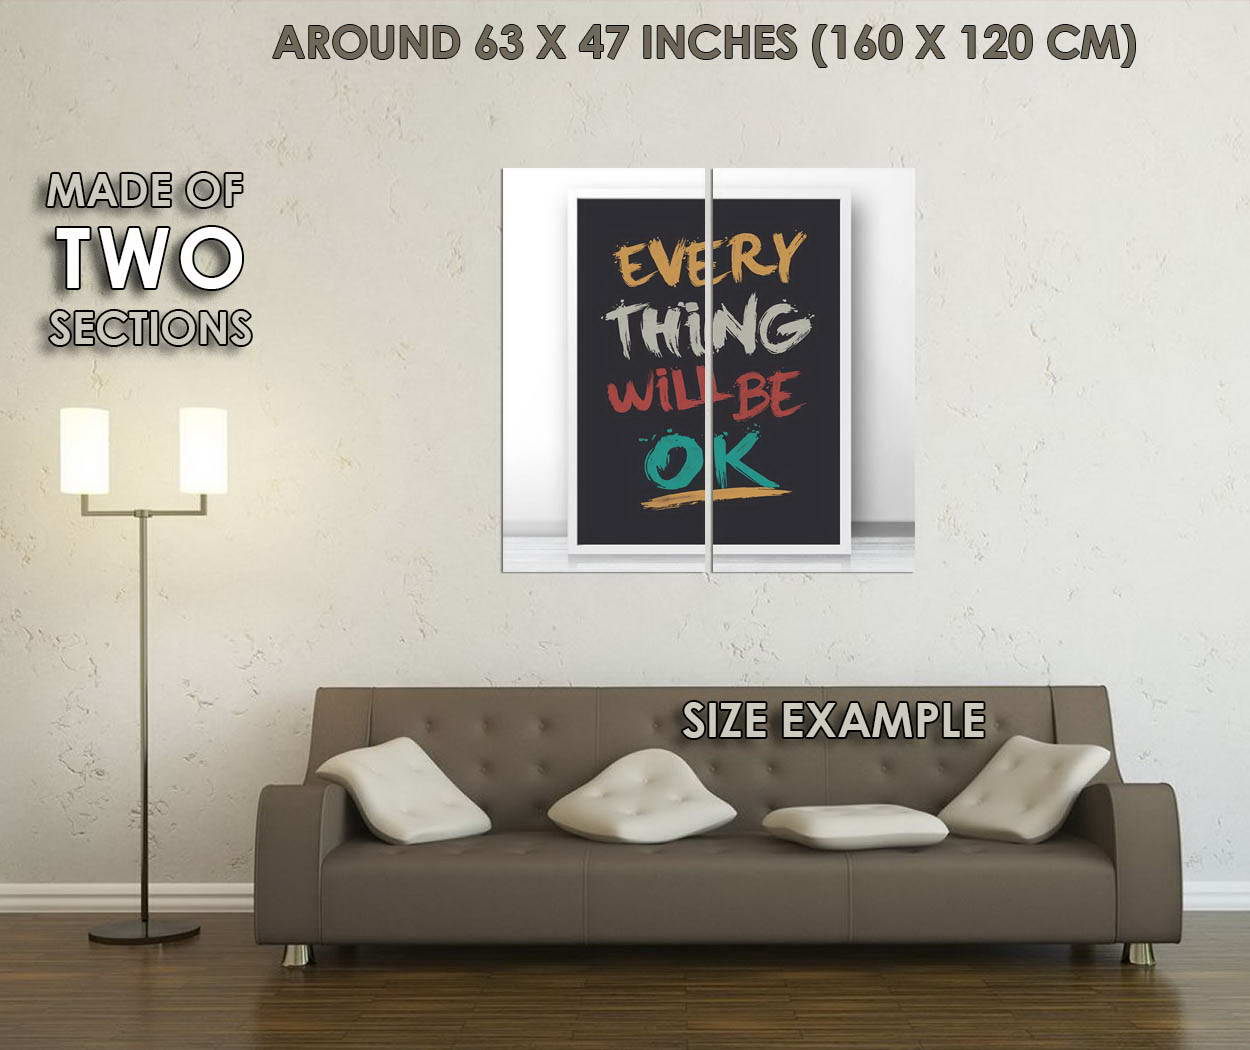 10717-Motivational-Quote-Minimalist-Art-Modern-Home-Office-GLOSSY-POSTER-CA thumbnail 6